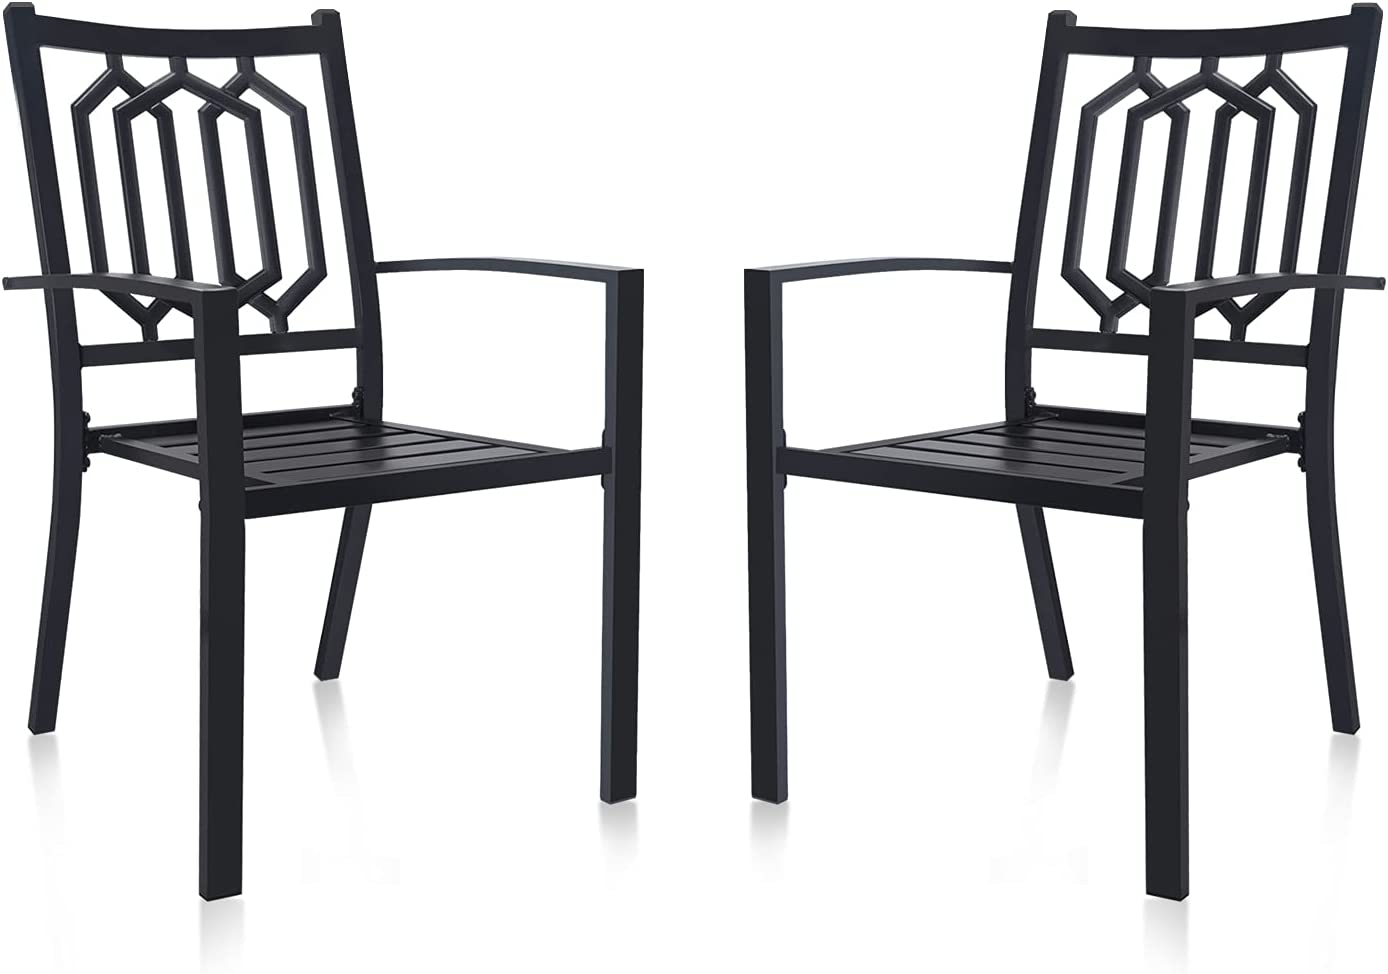 Japan's largest assortment MEOOEM Patio Dining Chairs Set Elegant of Outdoor Metal Stackable Arm 2